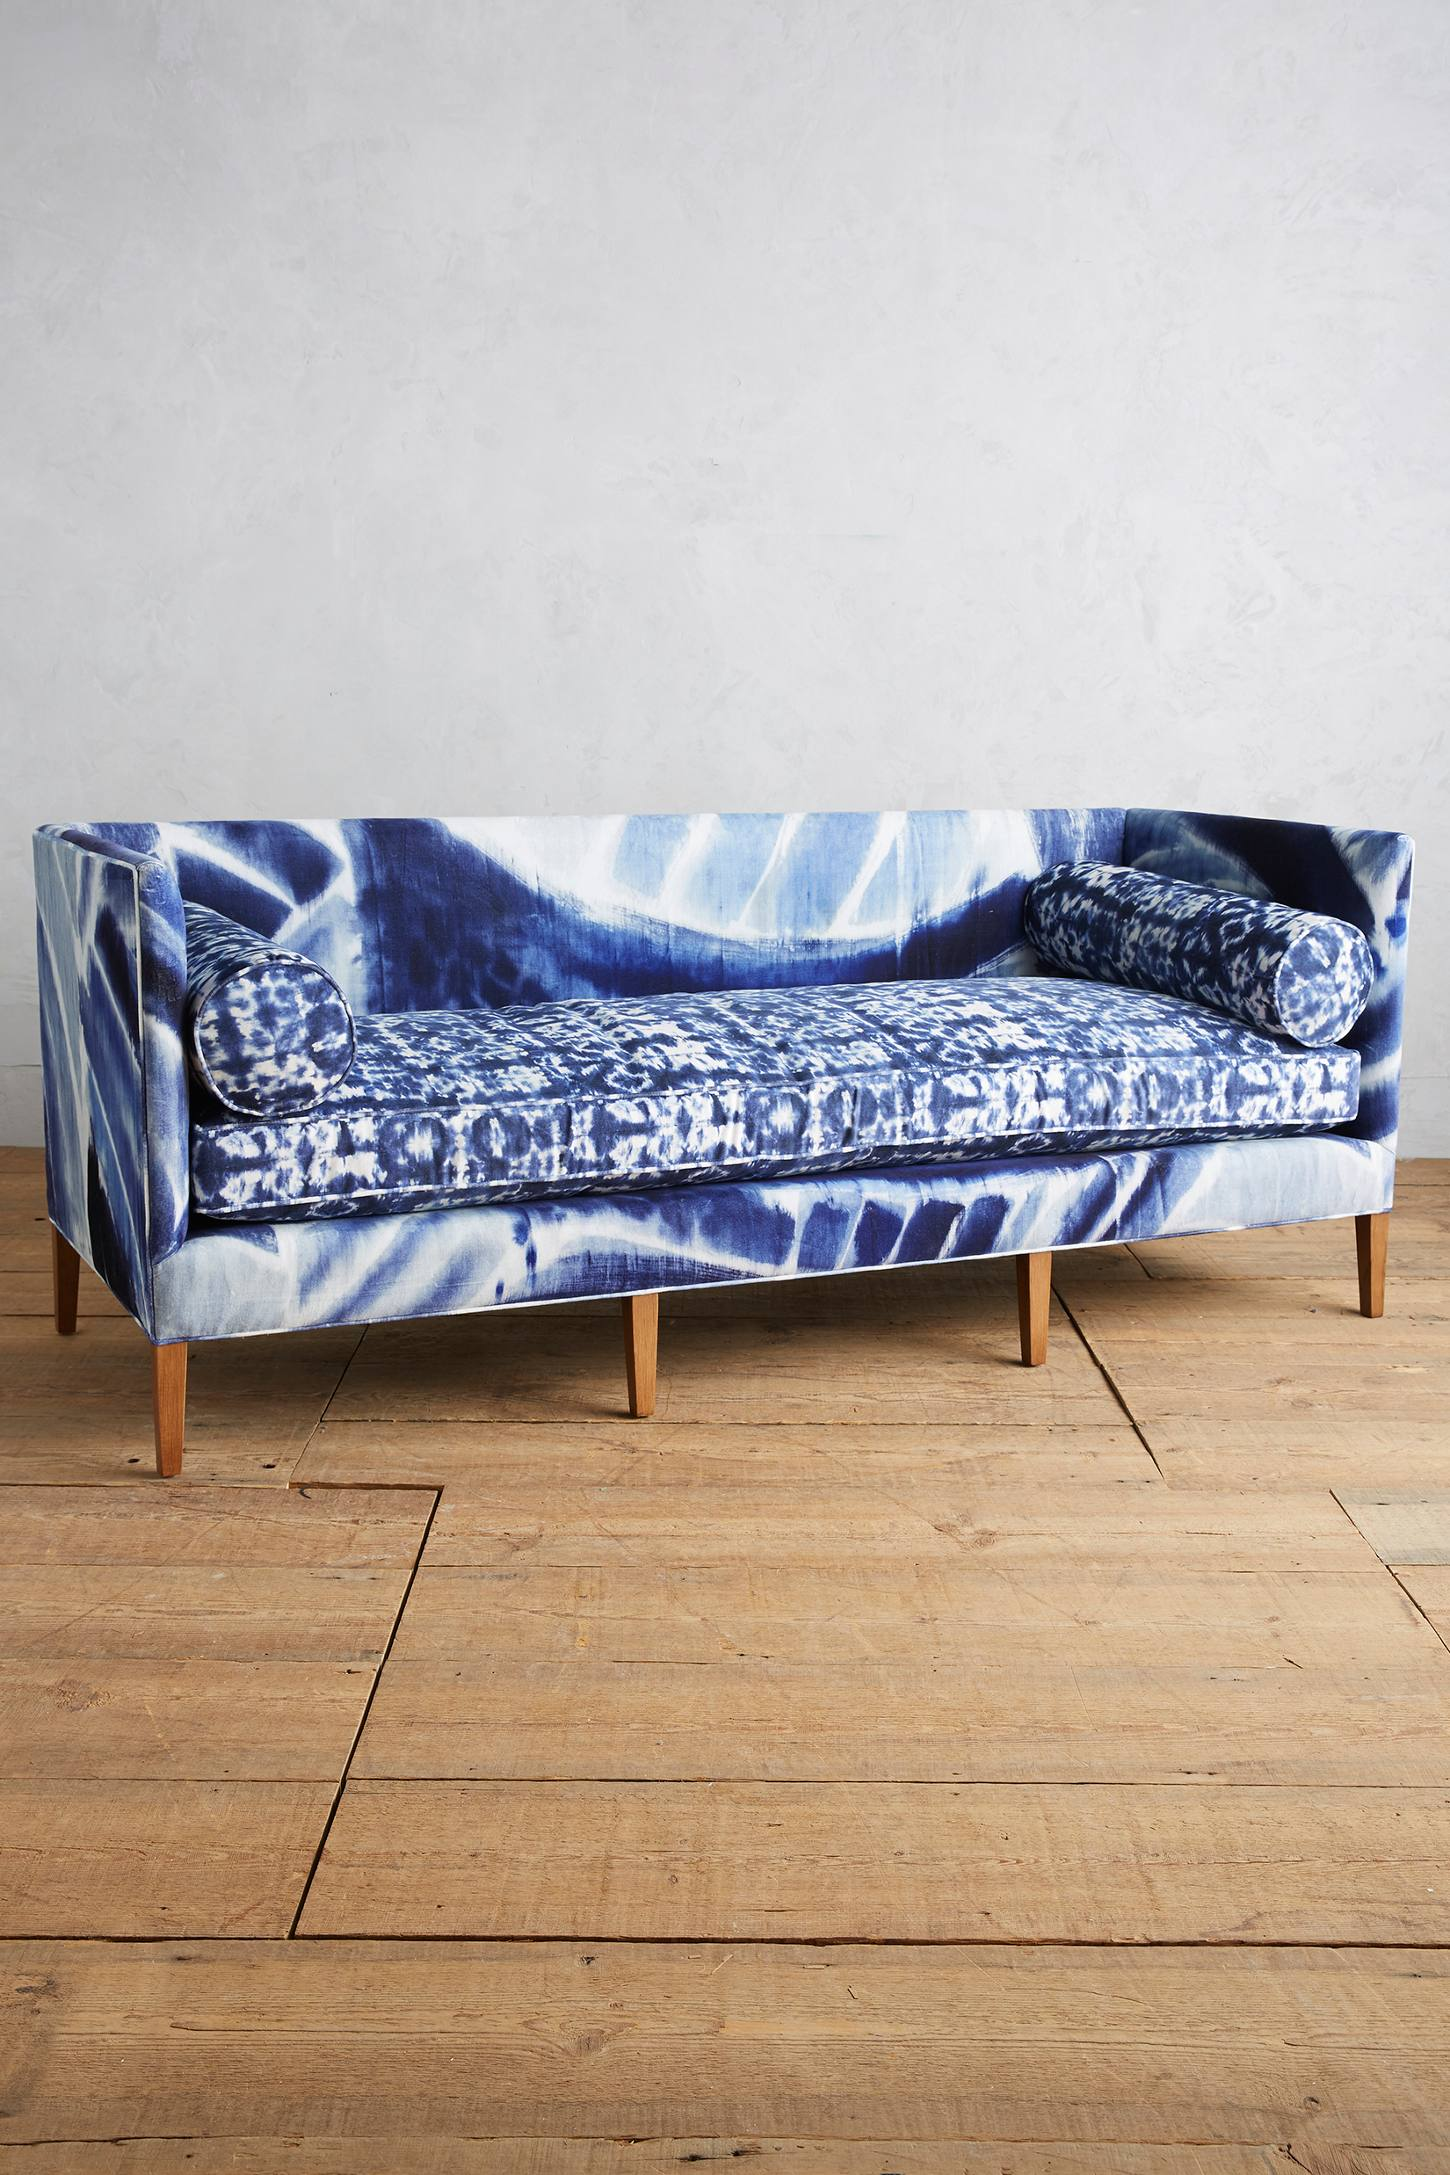 Shibori-inspired sofa from Anthropologie